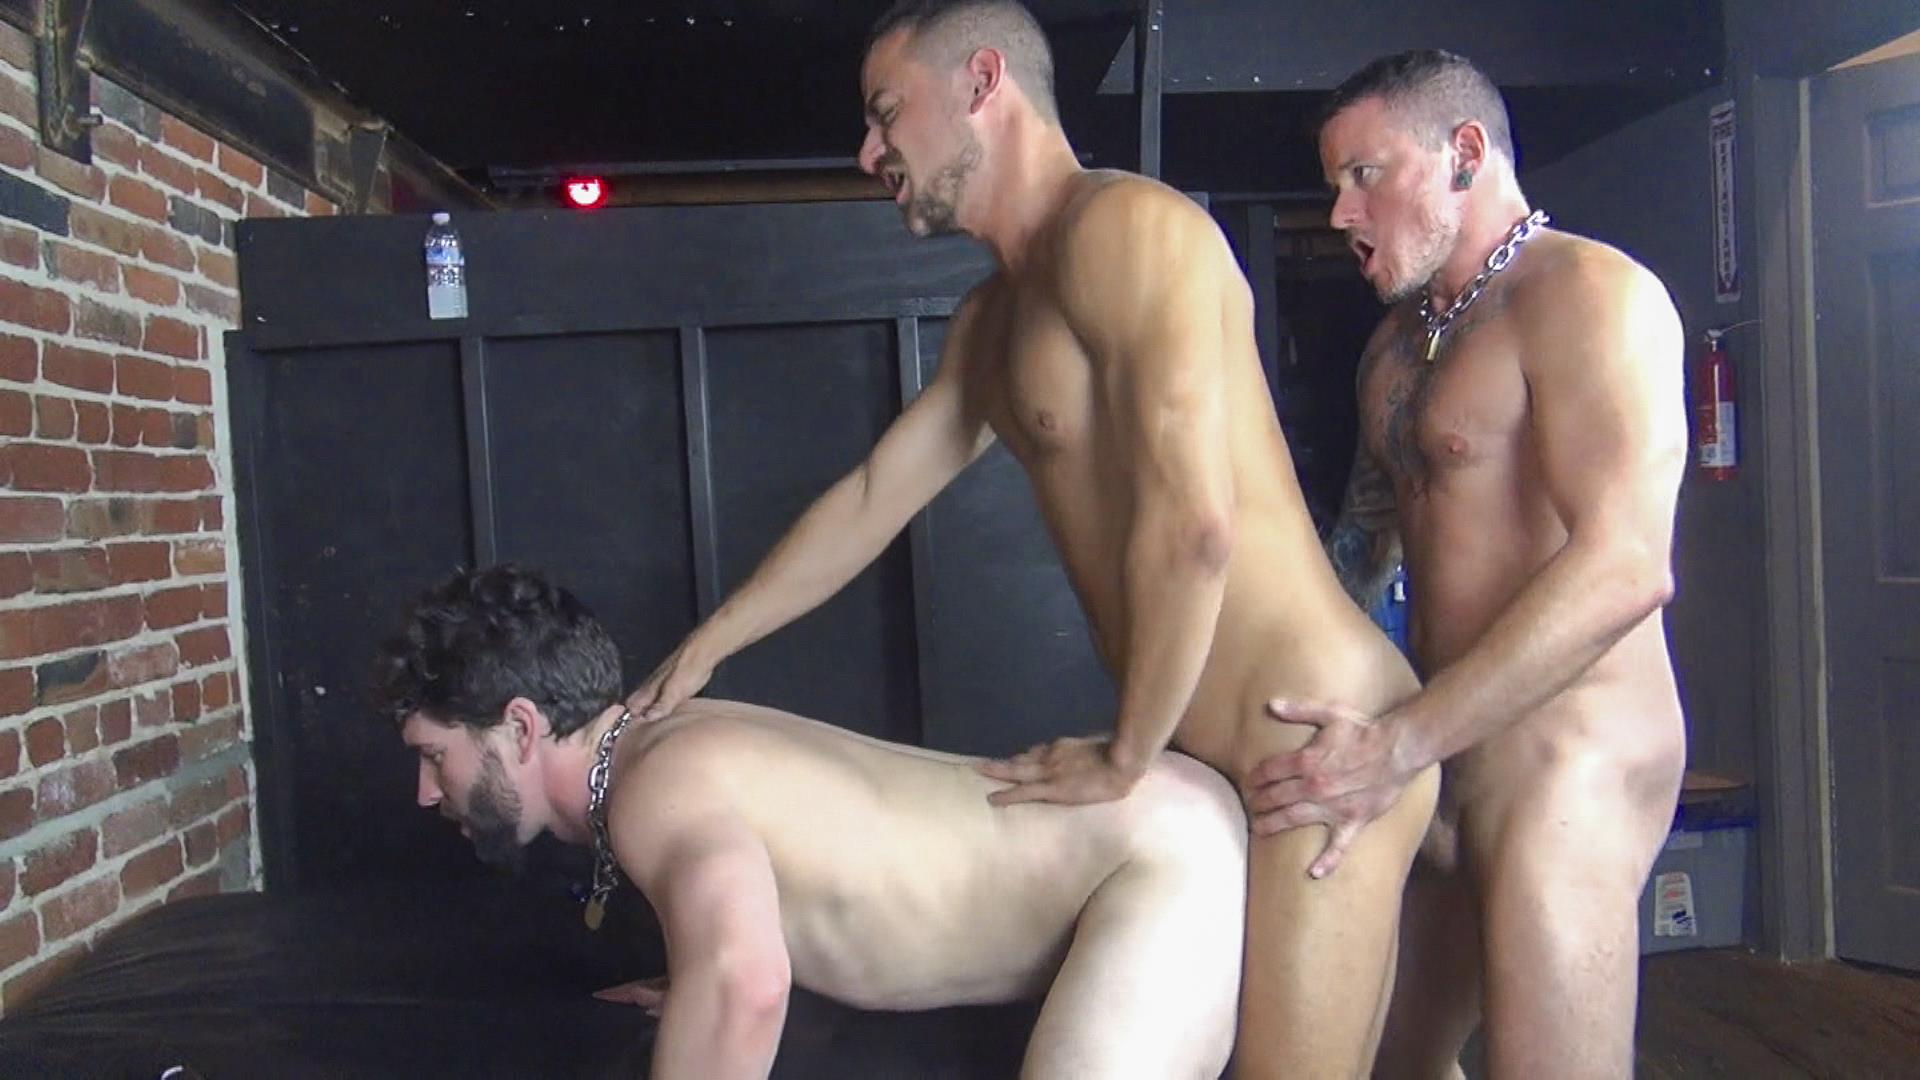 Raw-Fuck-Club-Max-Cameron-and-Jackson-Fillmore-and-Leon-Fox-Bareback-Double-Penetration-Amateur-Gay-Porn-03.jpg